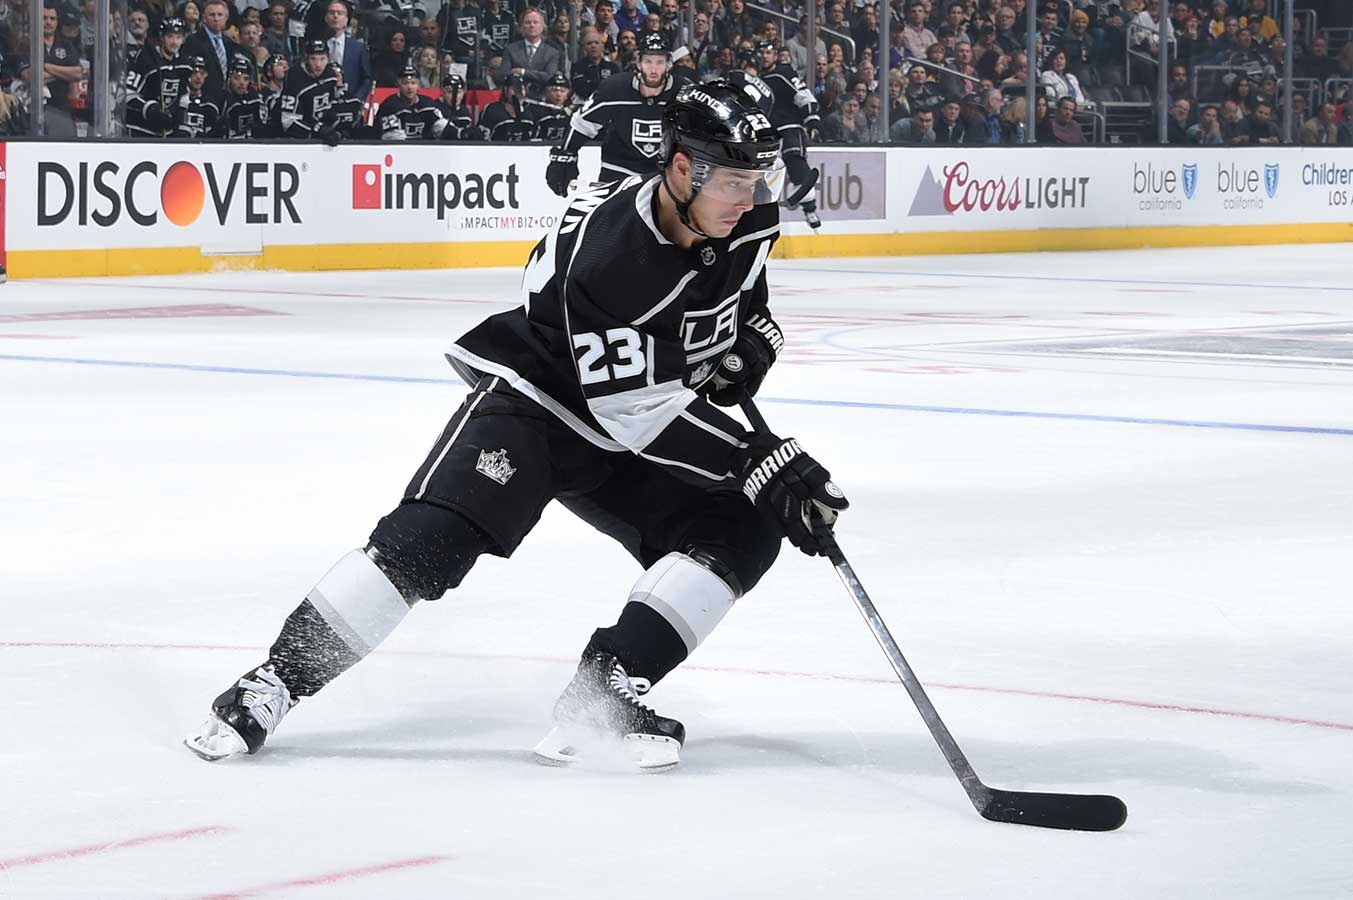 Dustin-brown-player-safety-hearing